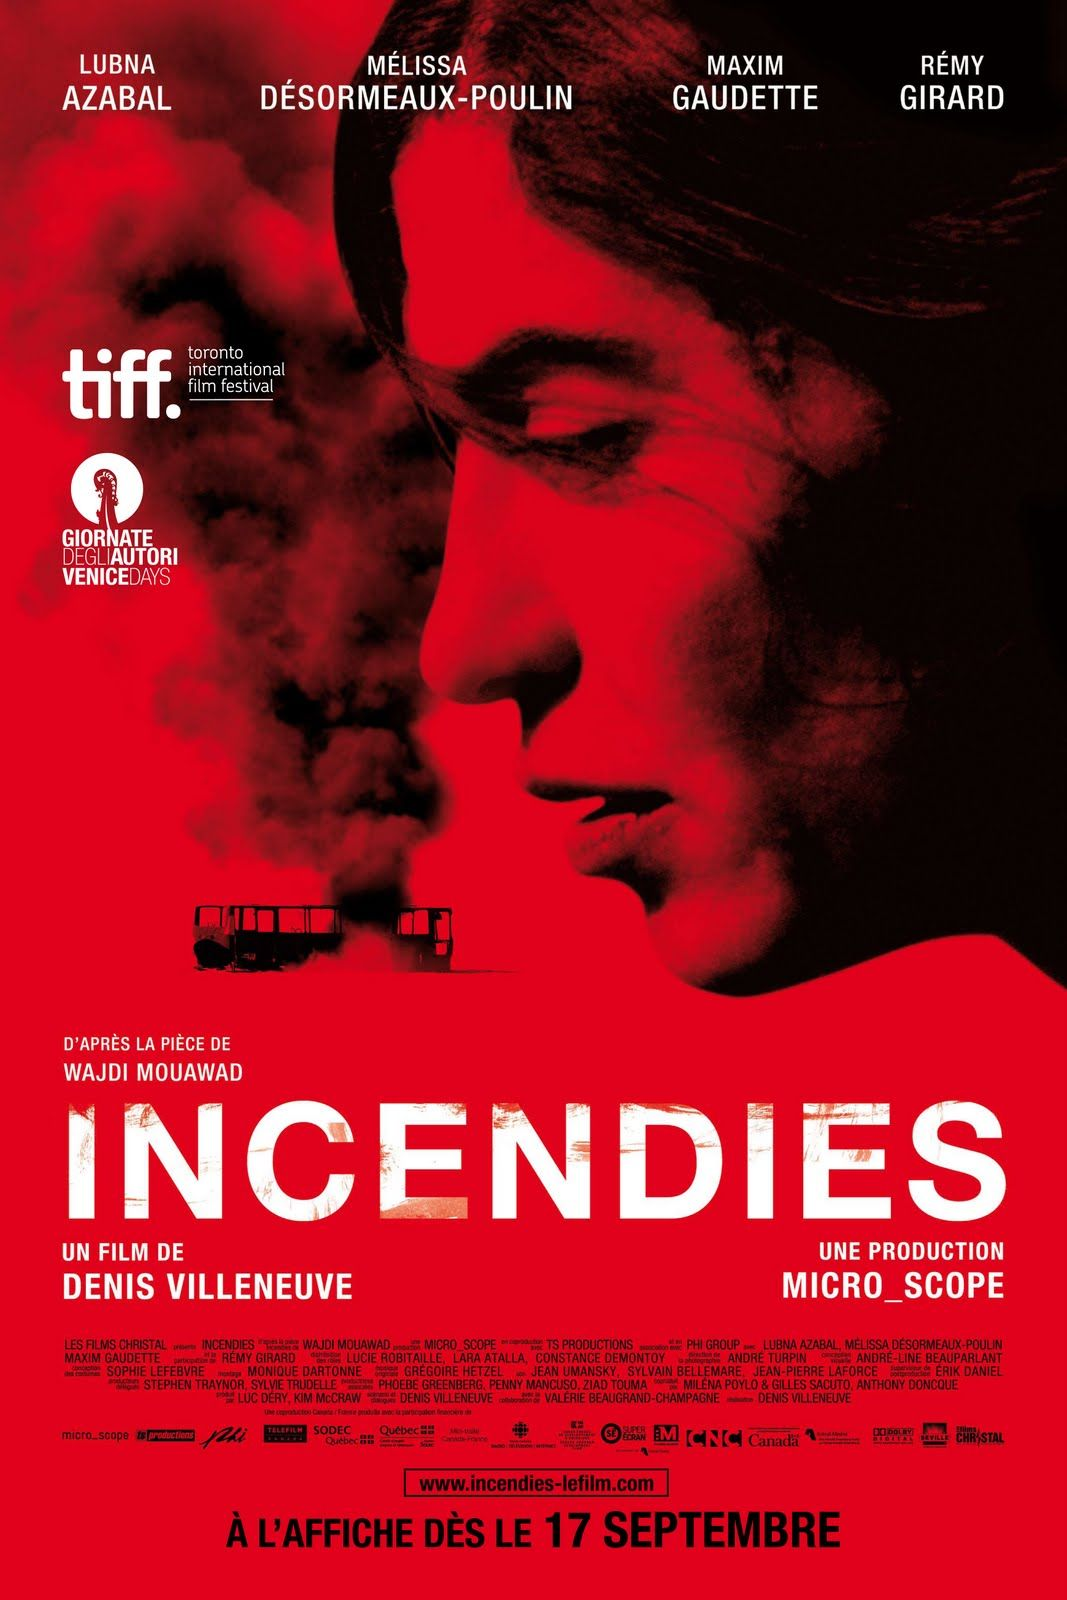 GRATUIT DVDRIP INCENDIES TÉLÉCHARGER FRENCH